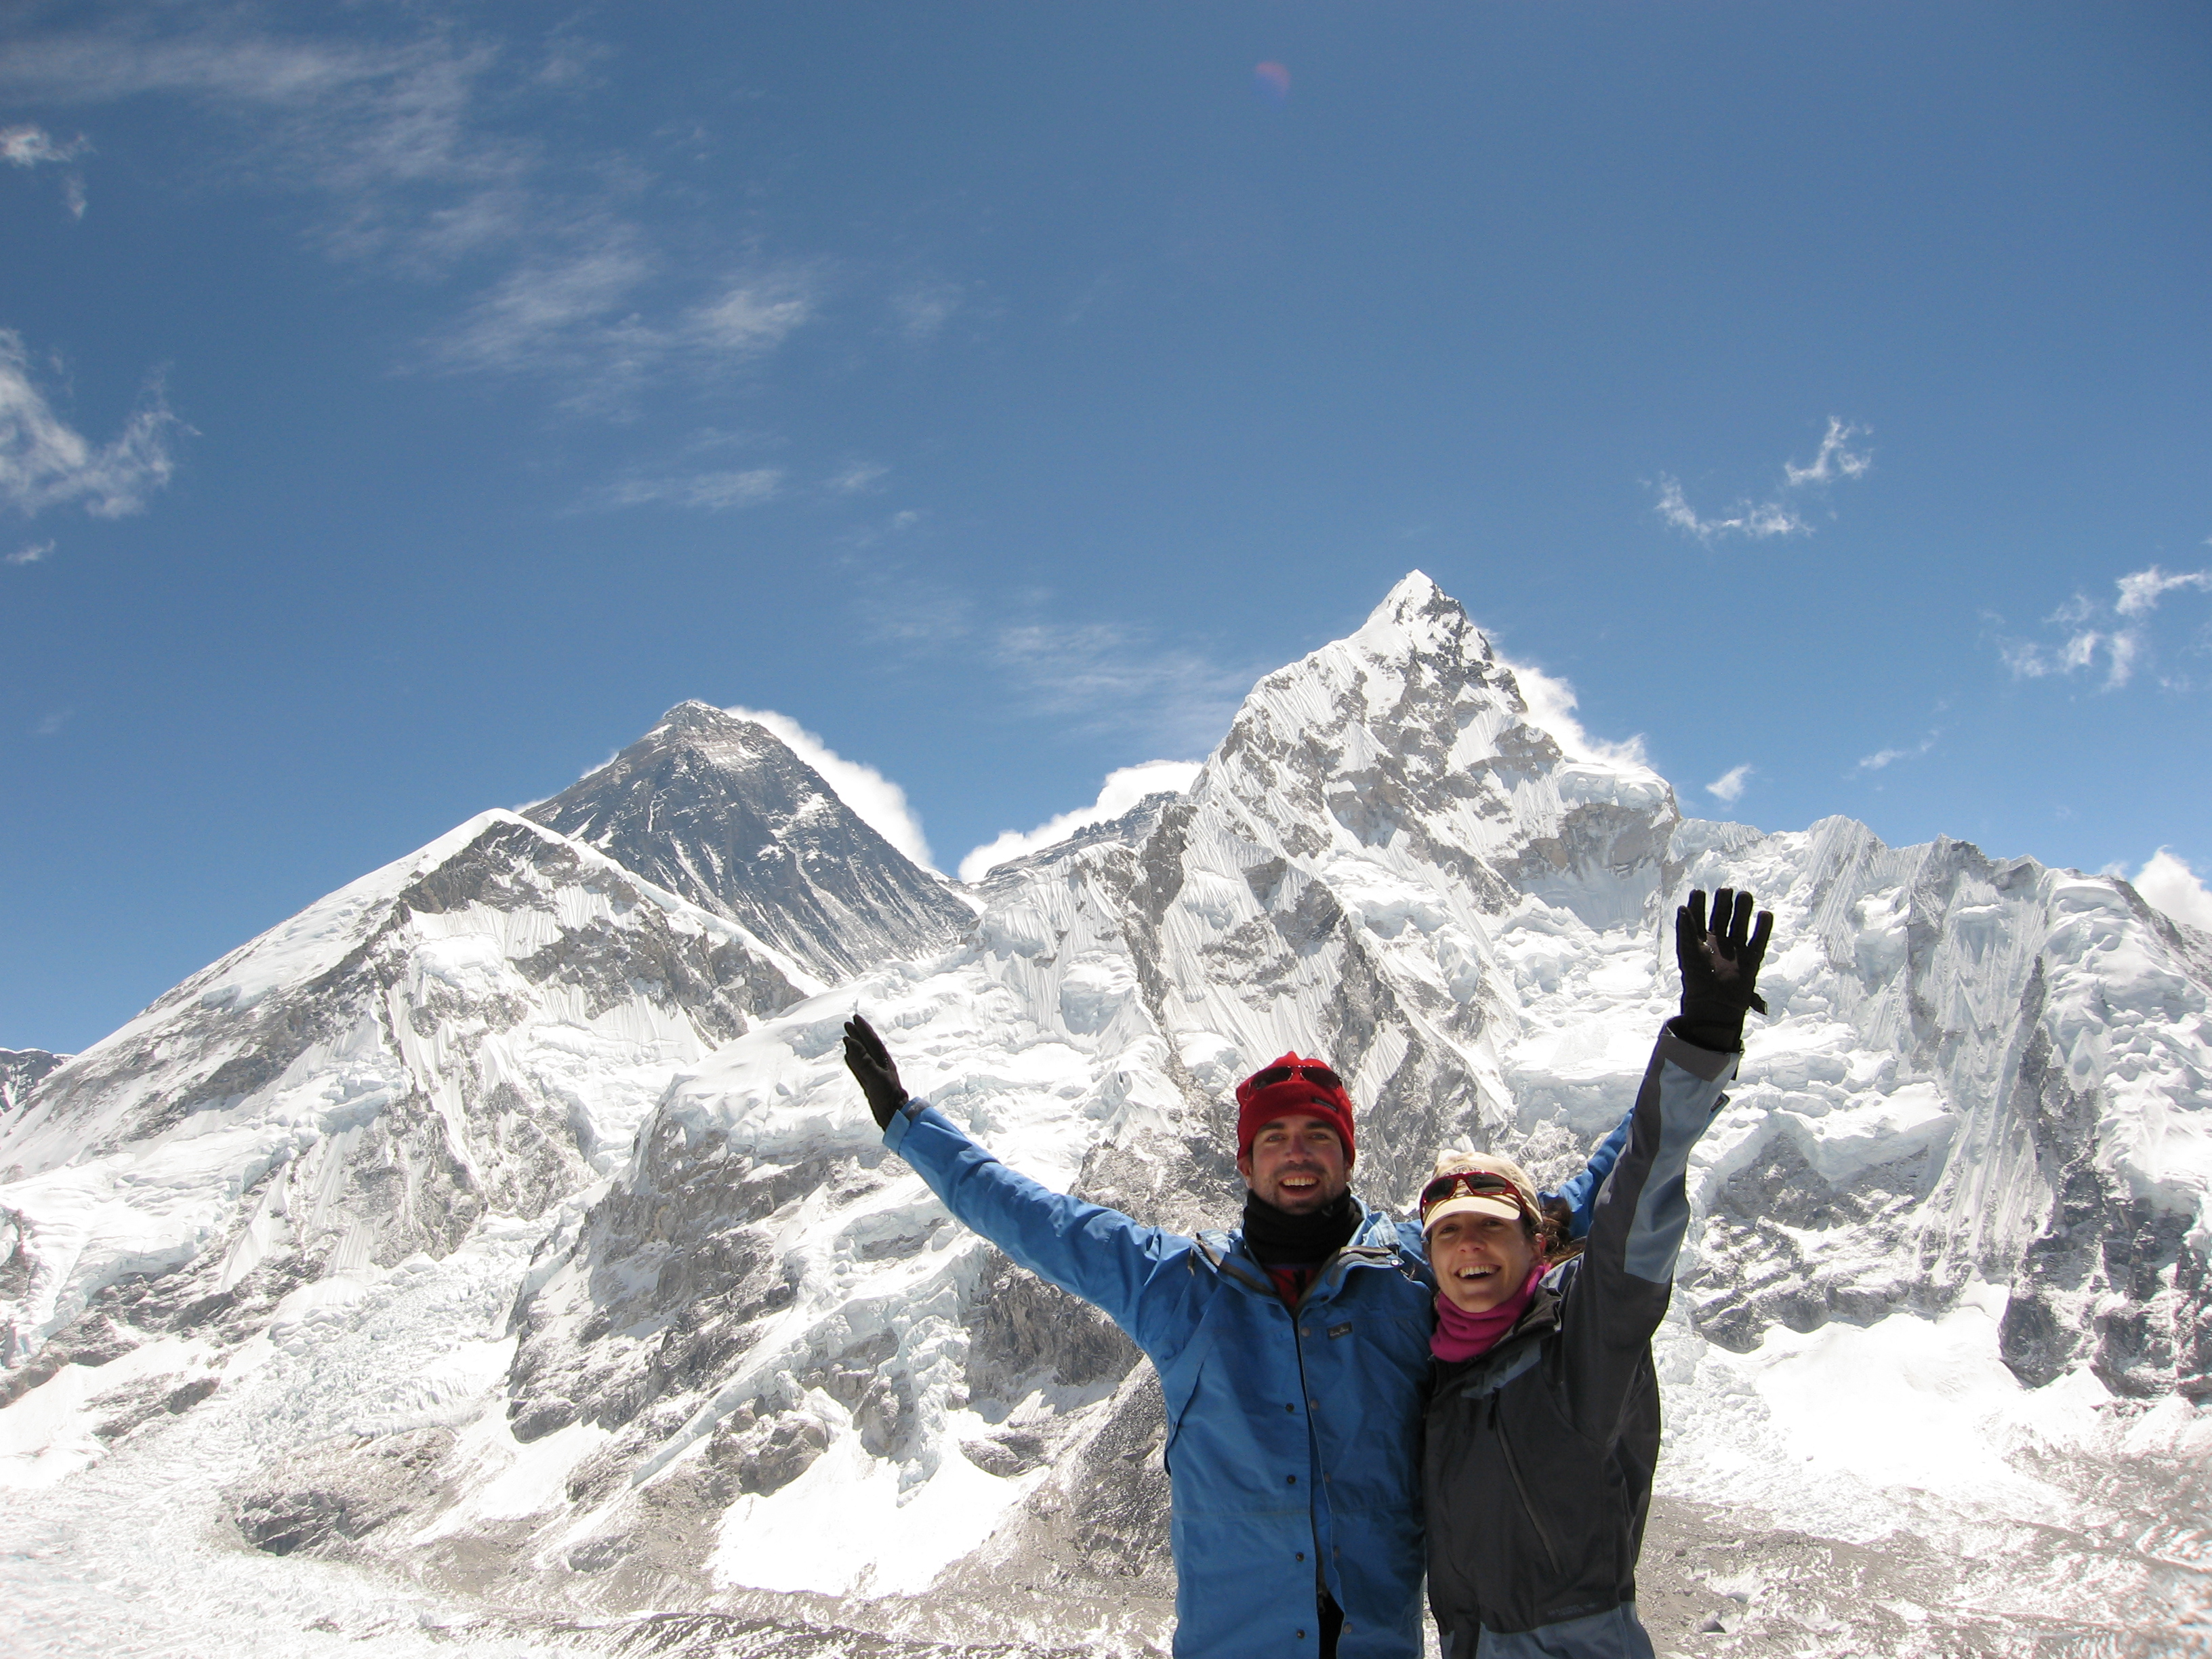 Chris and Bridge on Kala Patar after a special occasion. Photo by Passang Sherpa